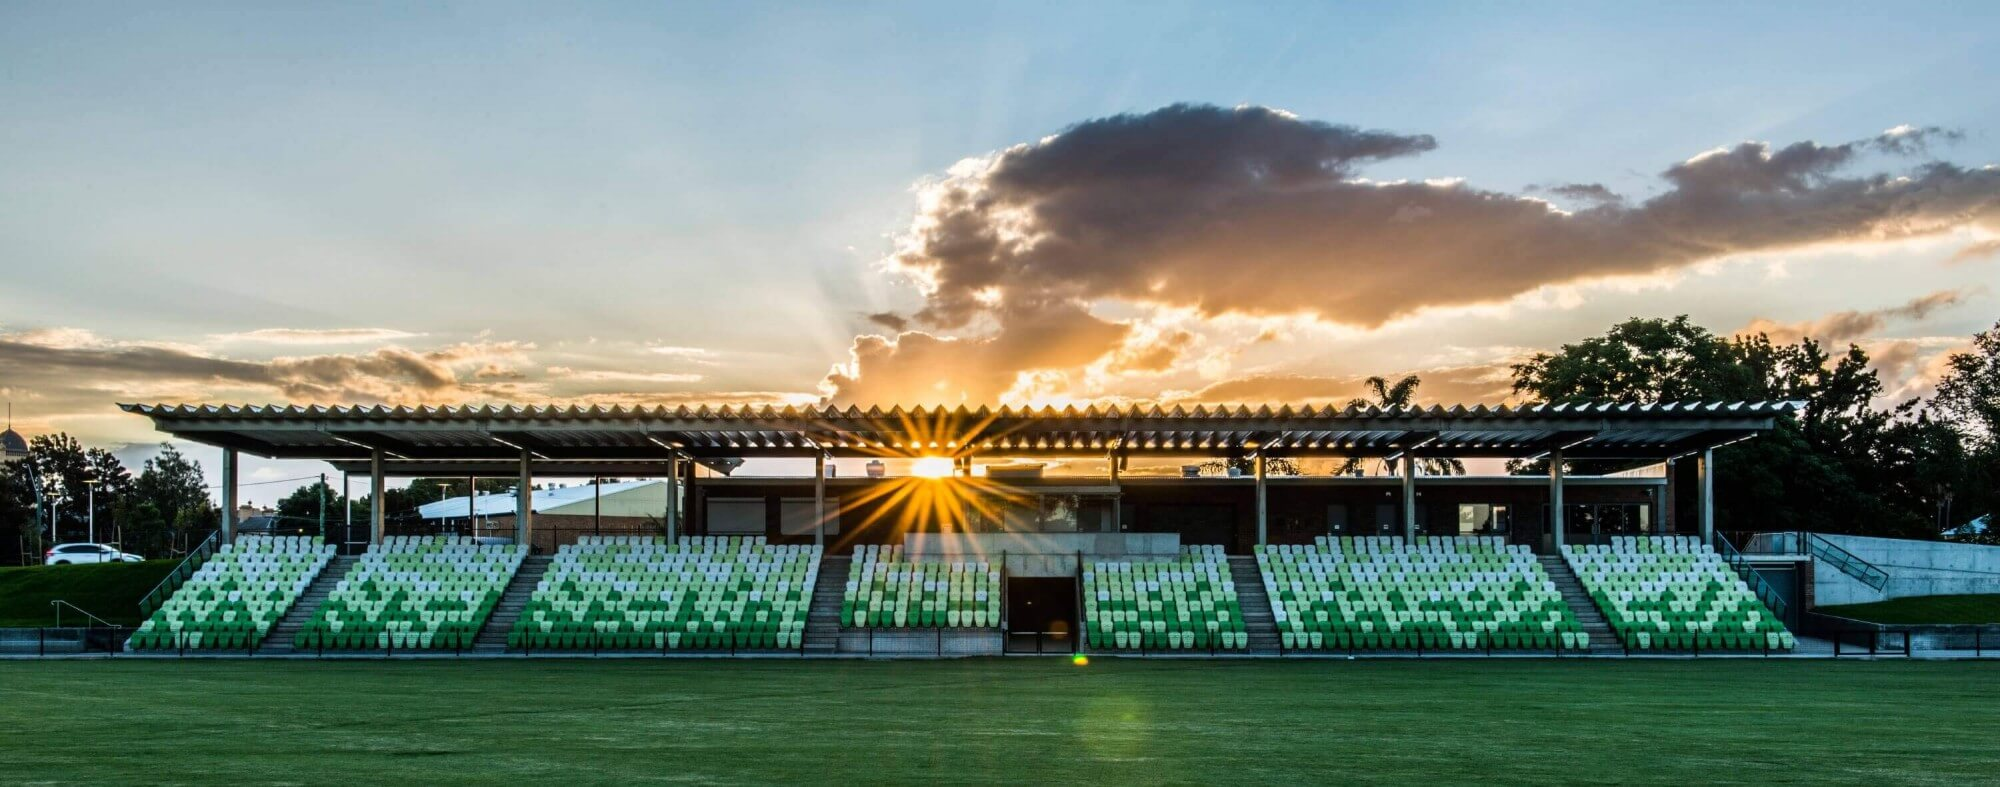 Sporting ground construction completed